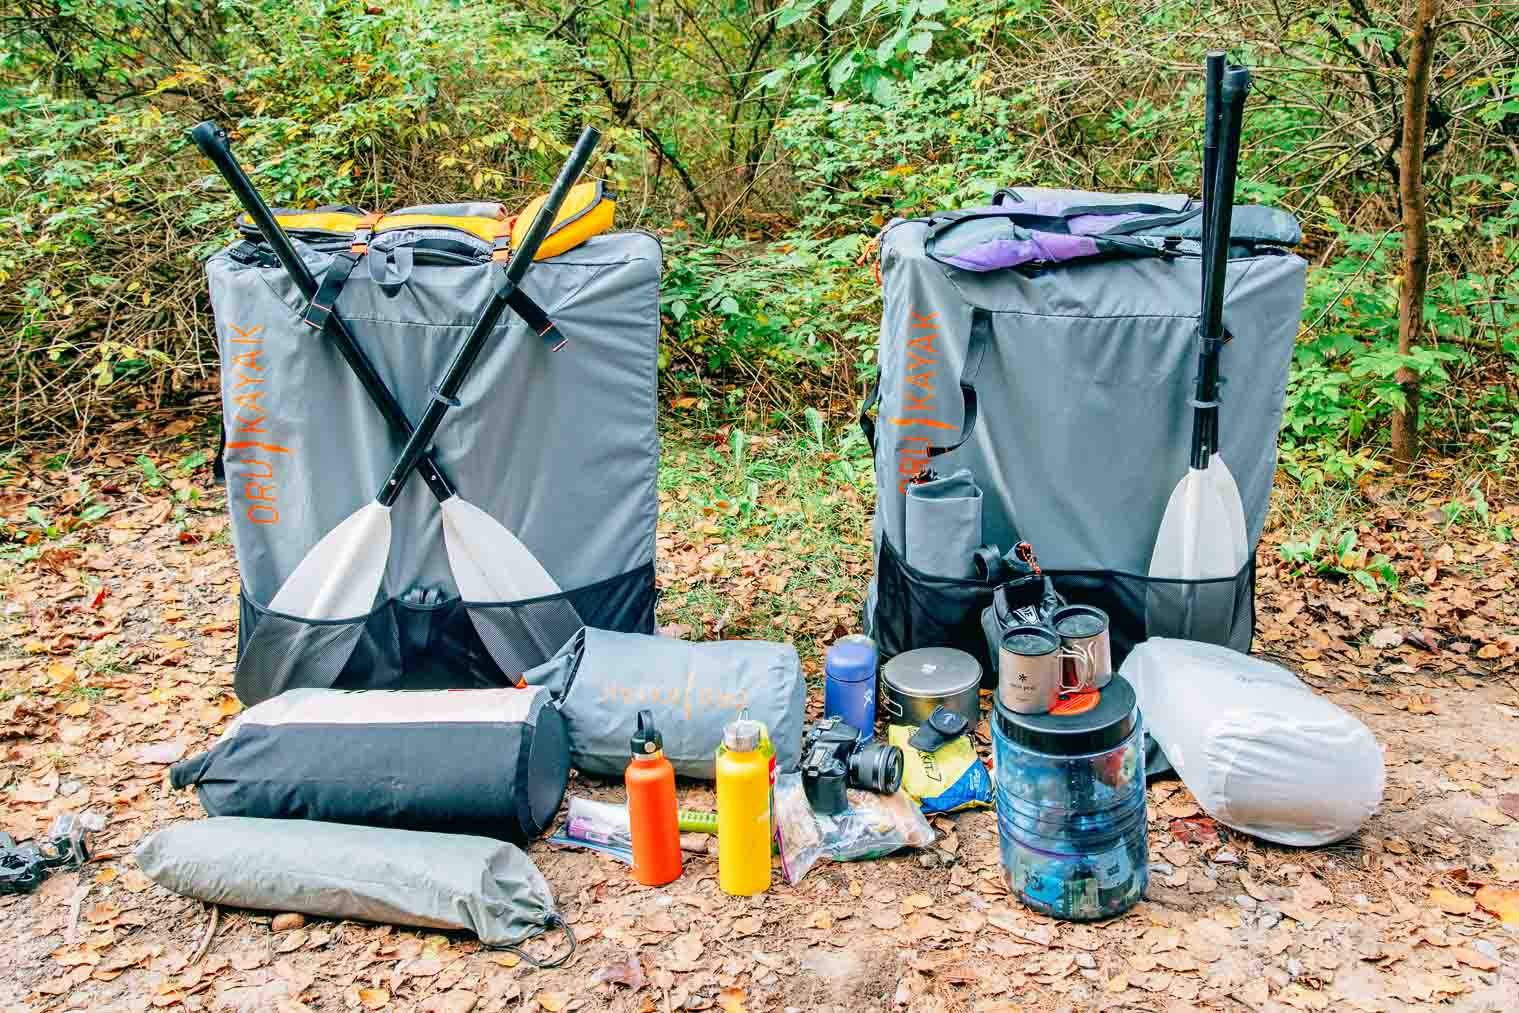 Overnight kayak camping gear